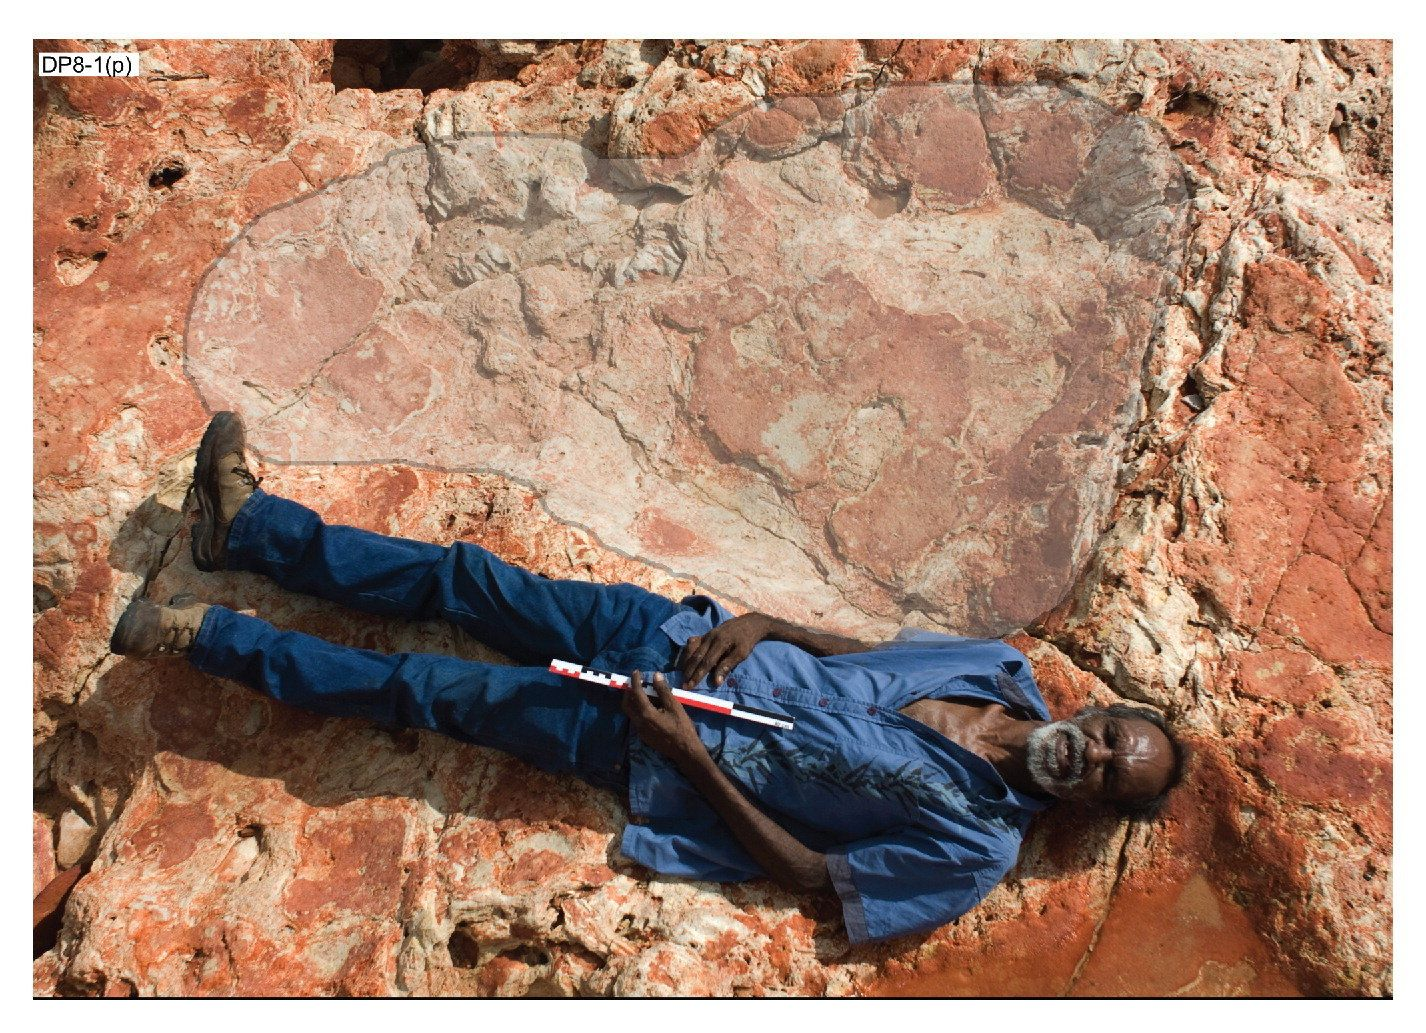 Richard Hunter is seen lying next to the dinosaur print, which measures 5 feet 7 inches.